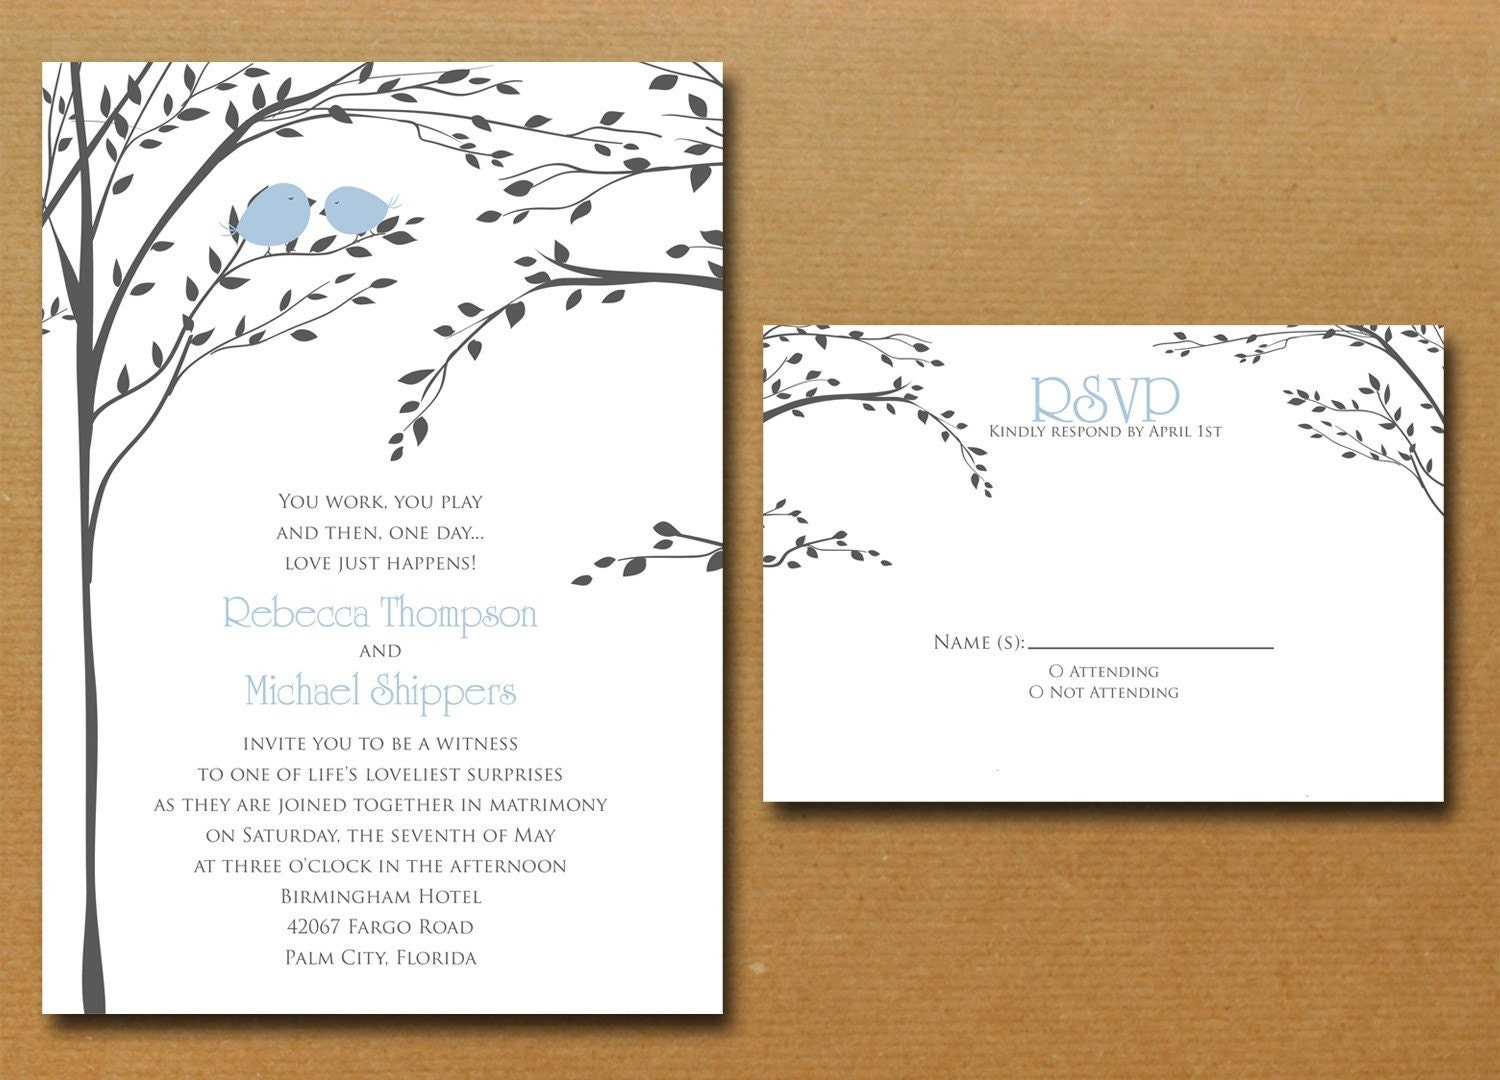 Bird Wedding Invitation: Love Birds In A Tree Wedding Invitation By Nmiphotocreations